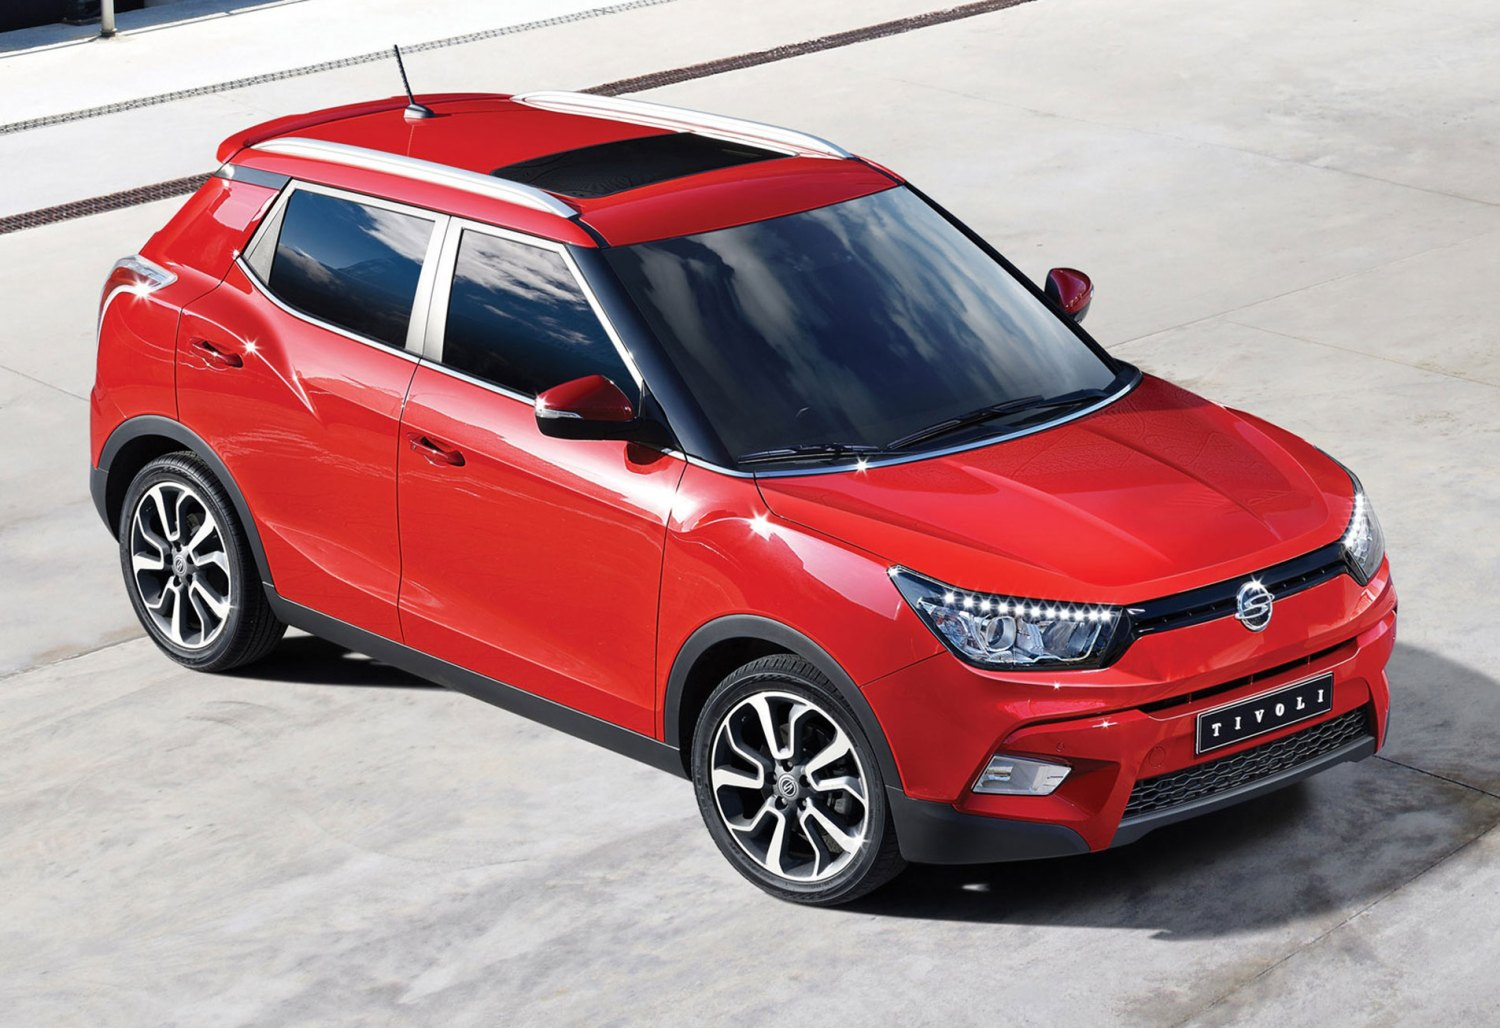 SsangYong unveils new Tivoli compact crossover SUV